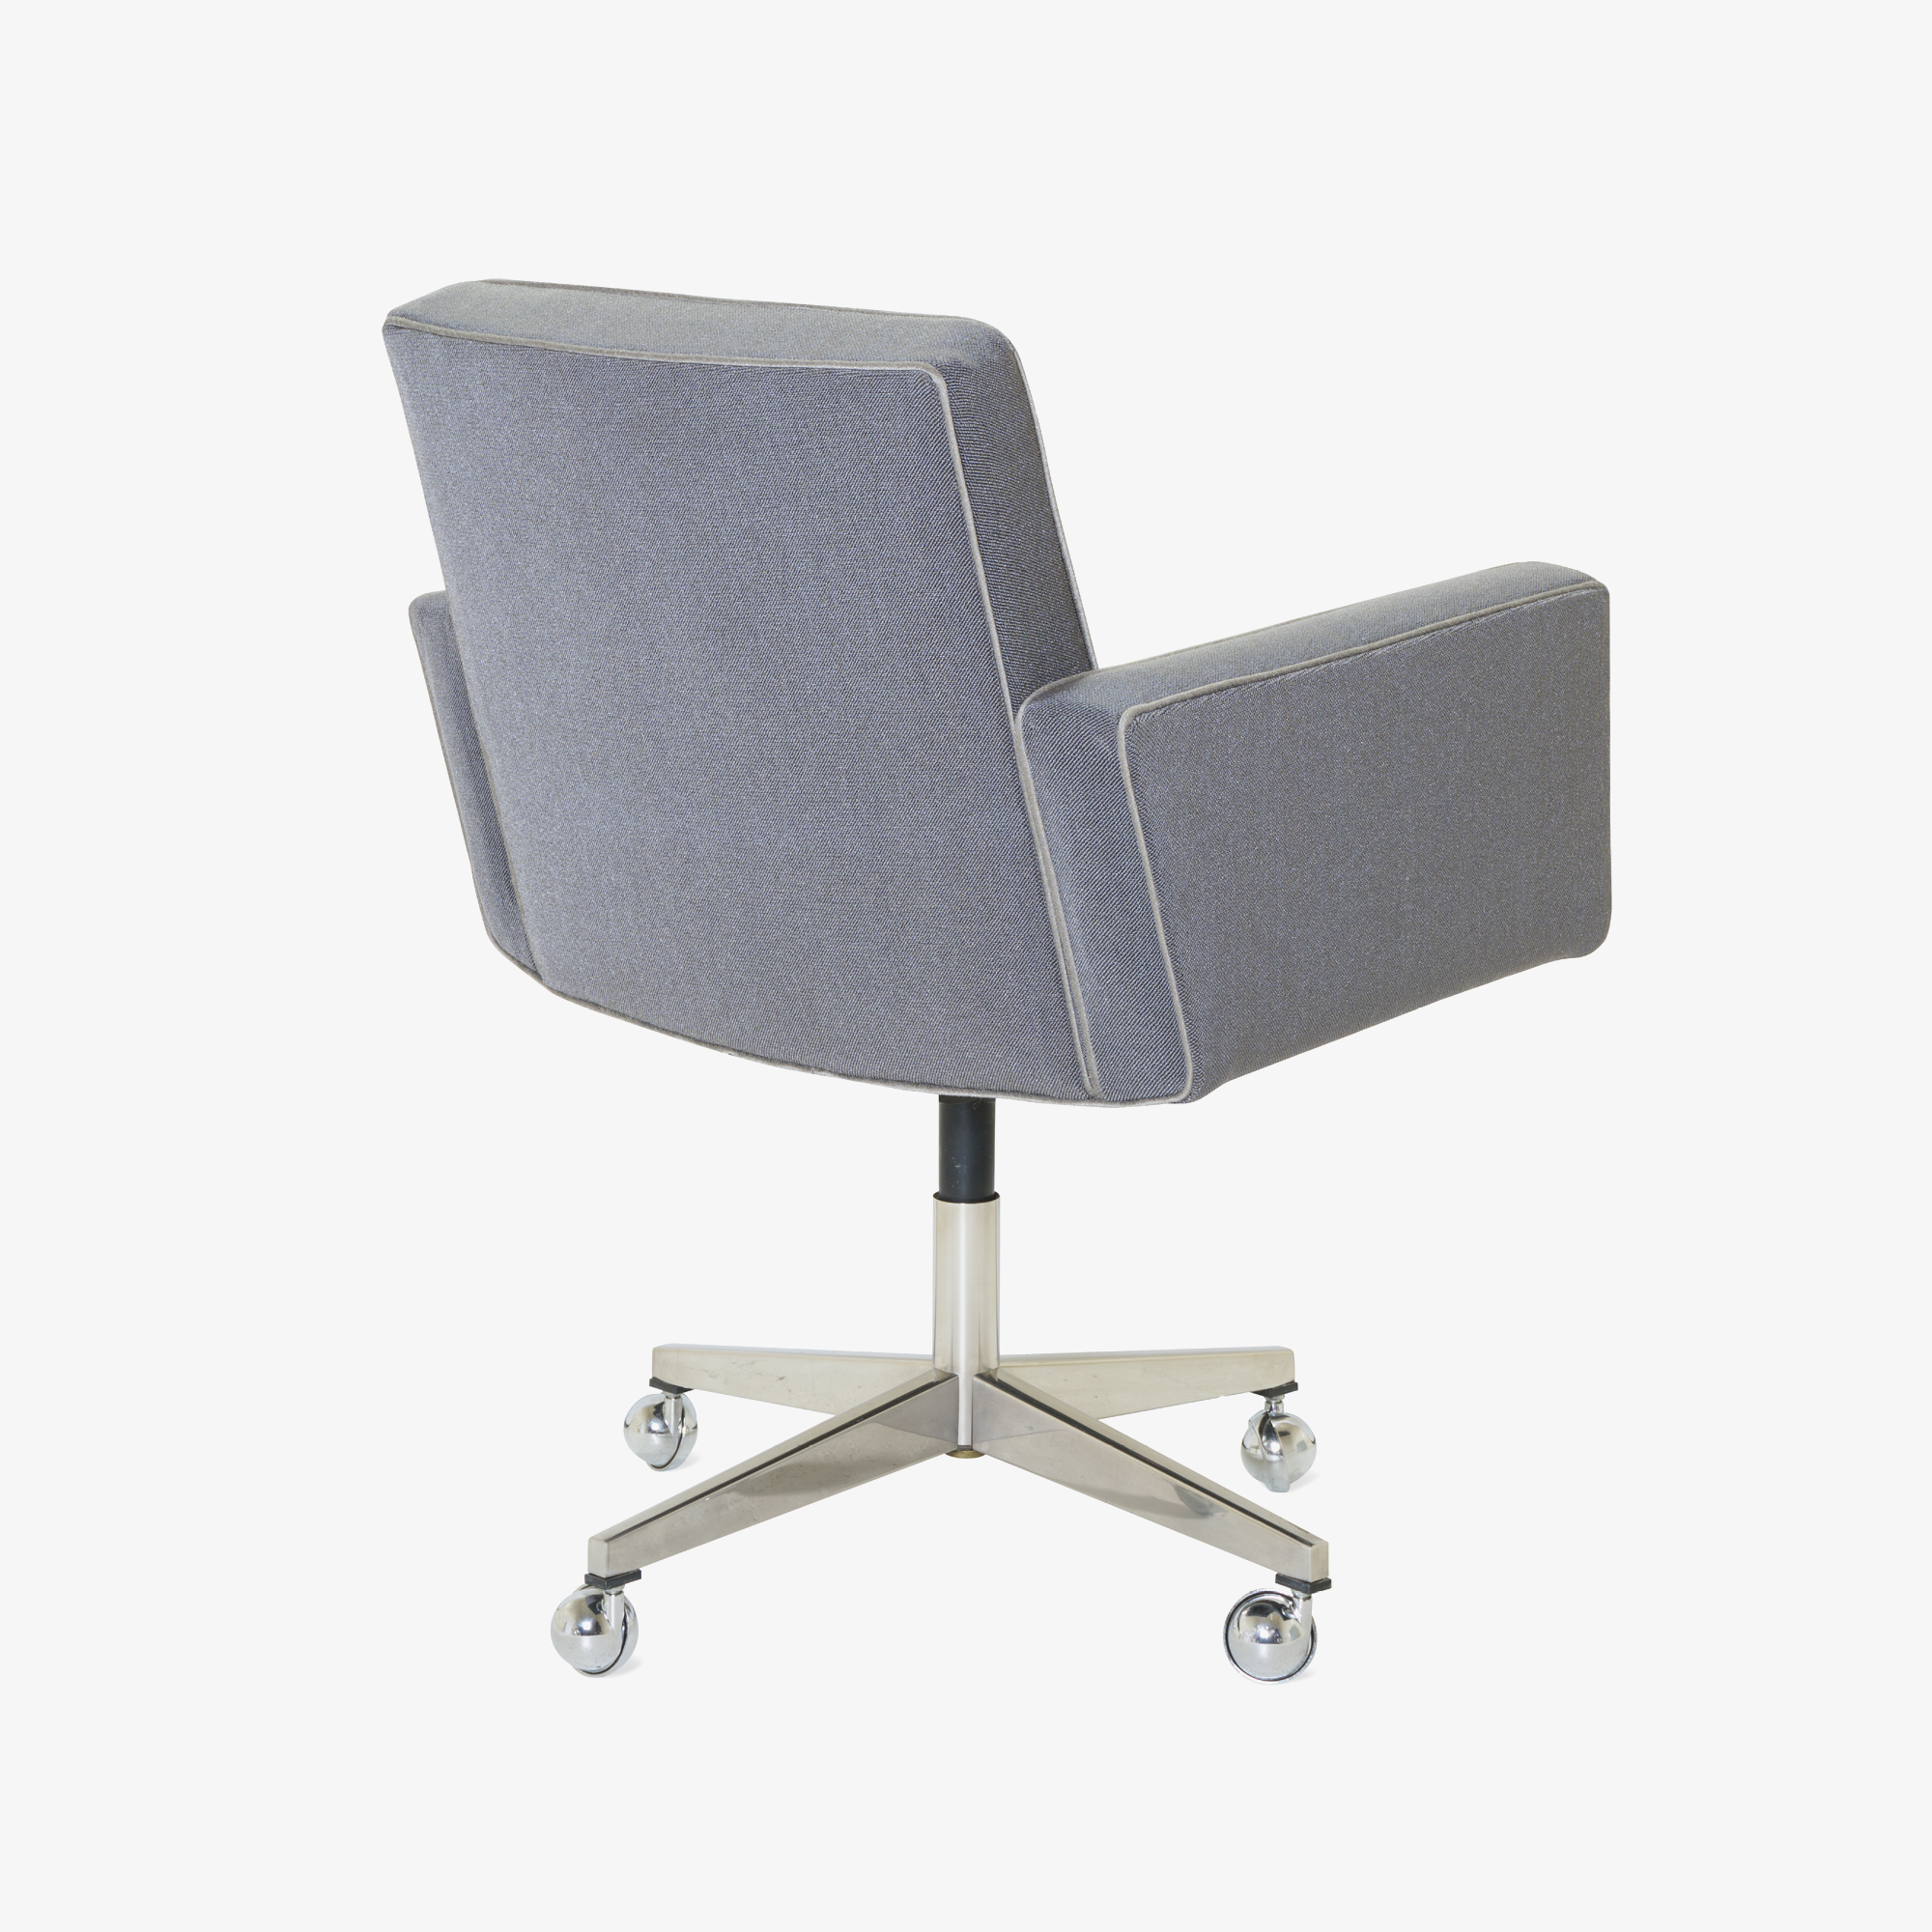 Executive Chair in Vintage KnollTextiles by Vincent Cafiero for Knoll4.png